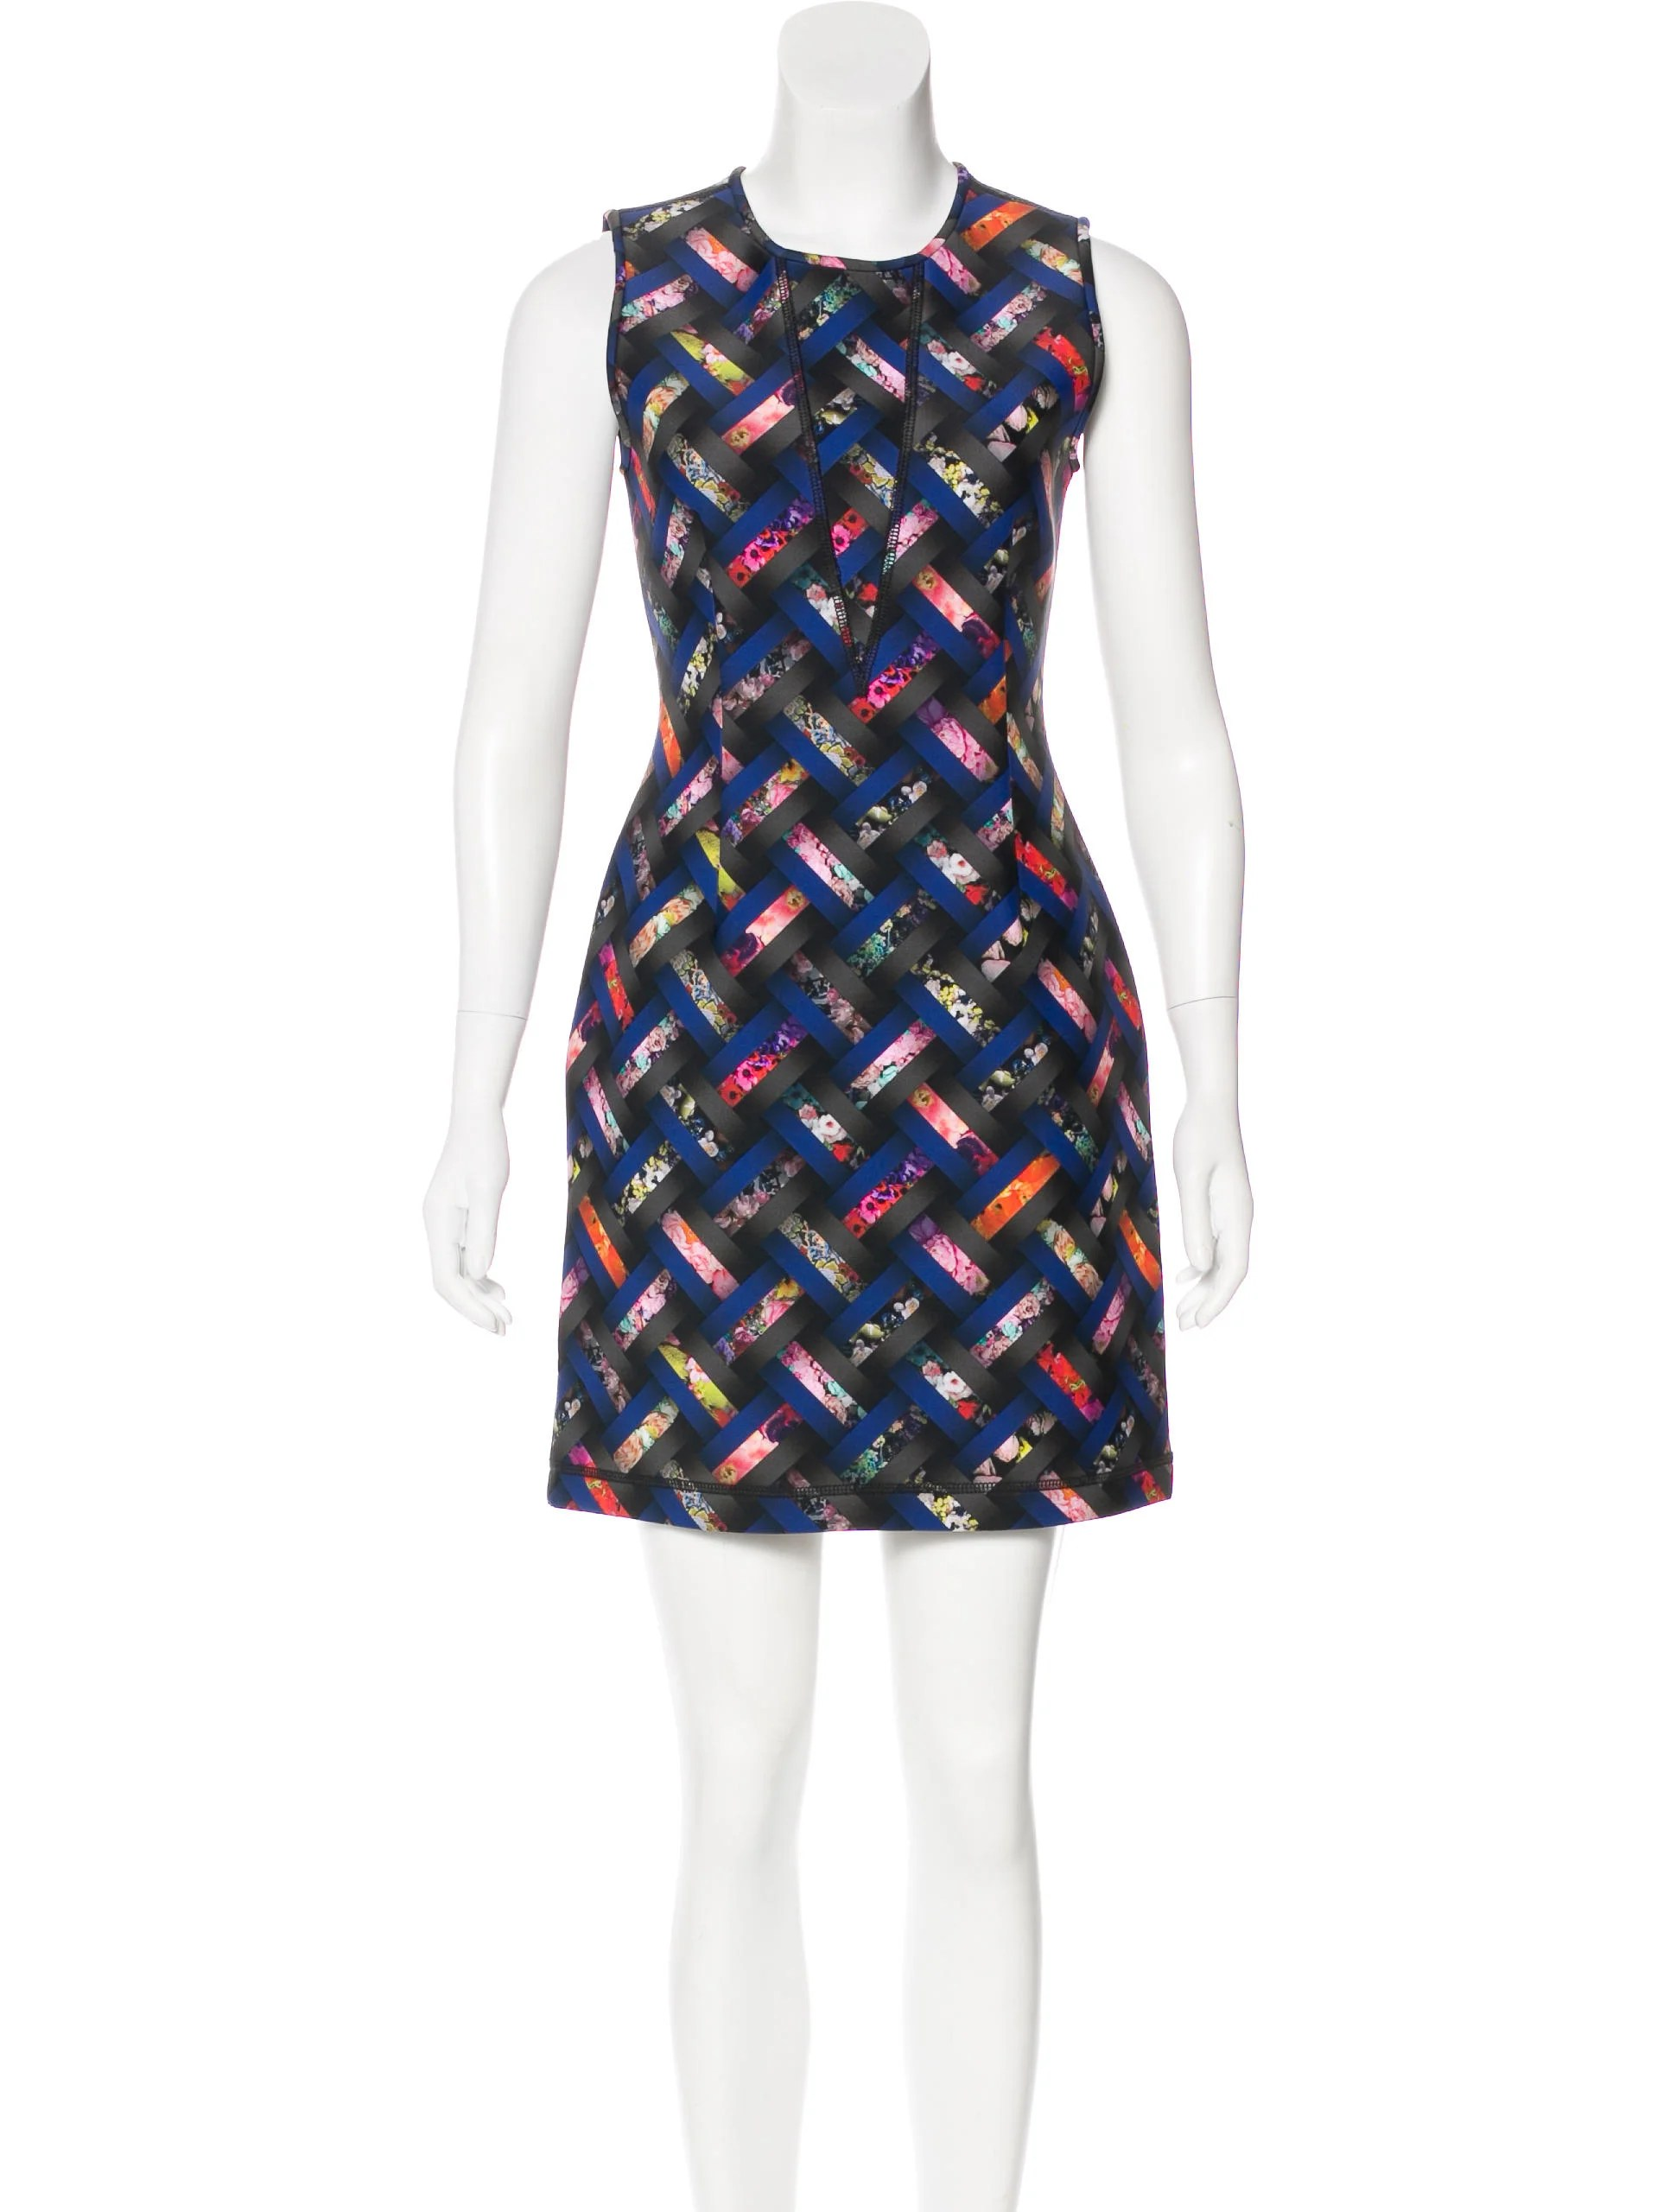 Mesmerizing Neoprene Printed Dress Cynthia Rowley Neoprene Printed Dress Clothing Cynthia Rowley Dresses Amazon Cynthia Rowley Dresses Canada wedding dress Cynthia Rowley Dresses